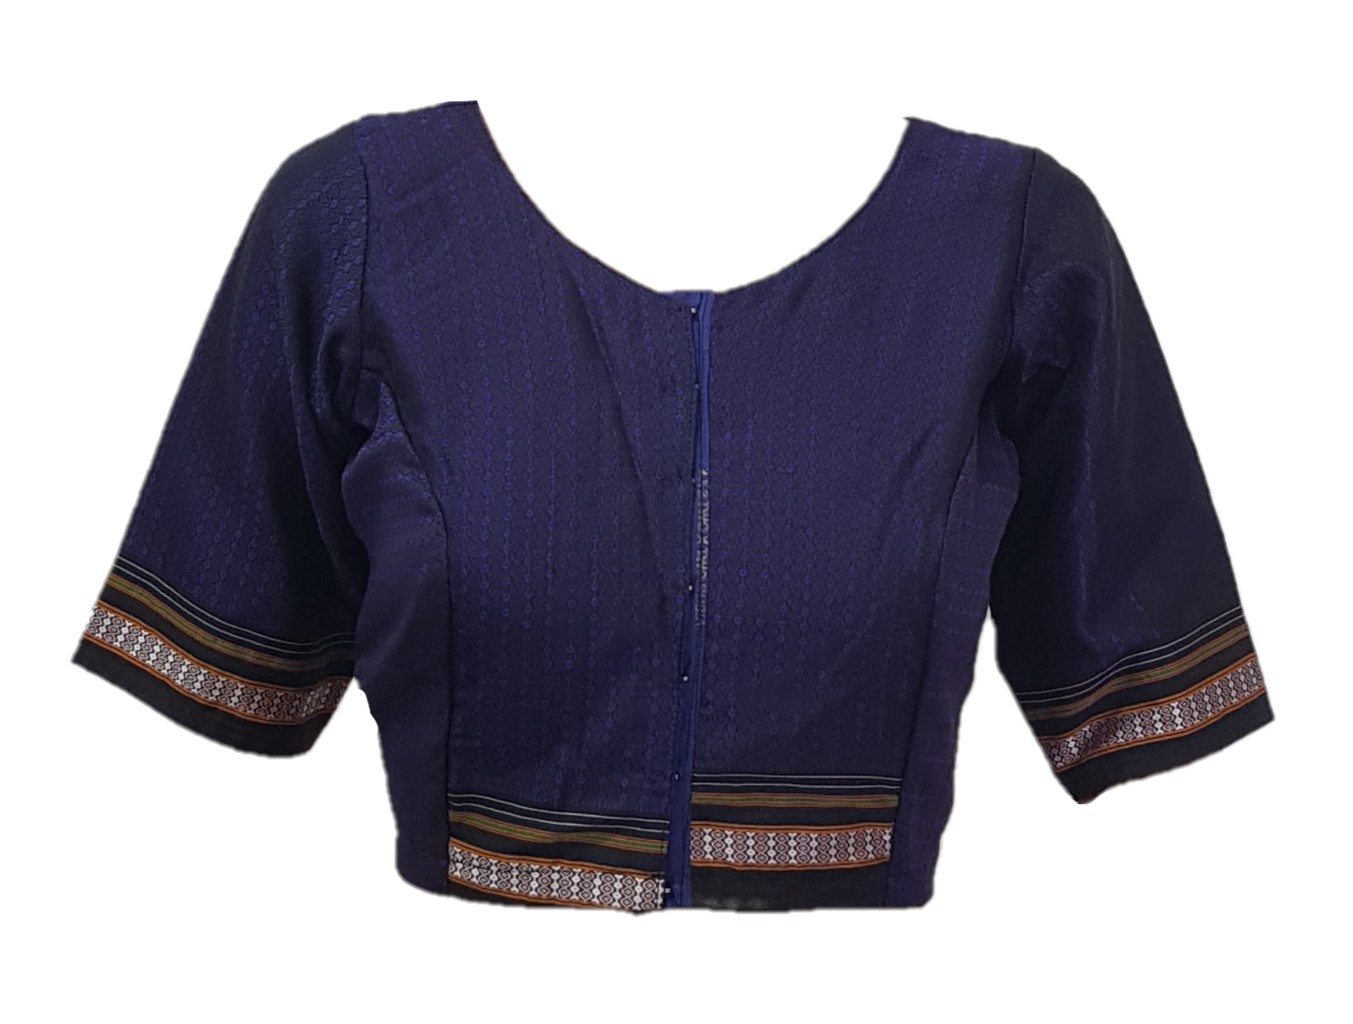 Ilkal Cotton Silk Khun Fabric Boat Neck Readymade Saree Blouse Deep Violet : Picture